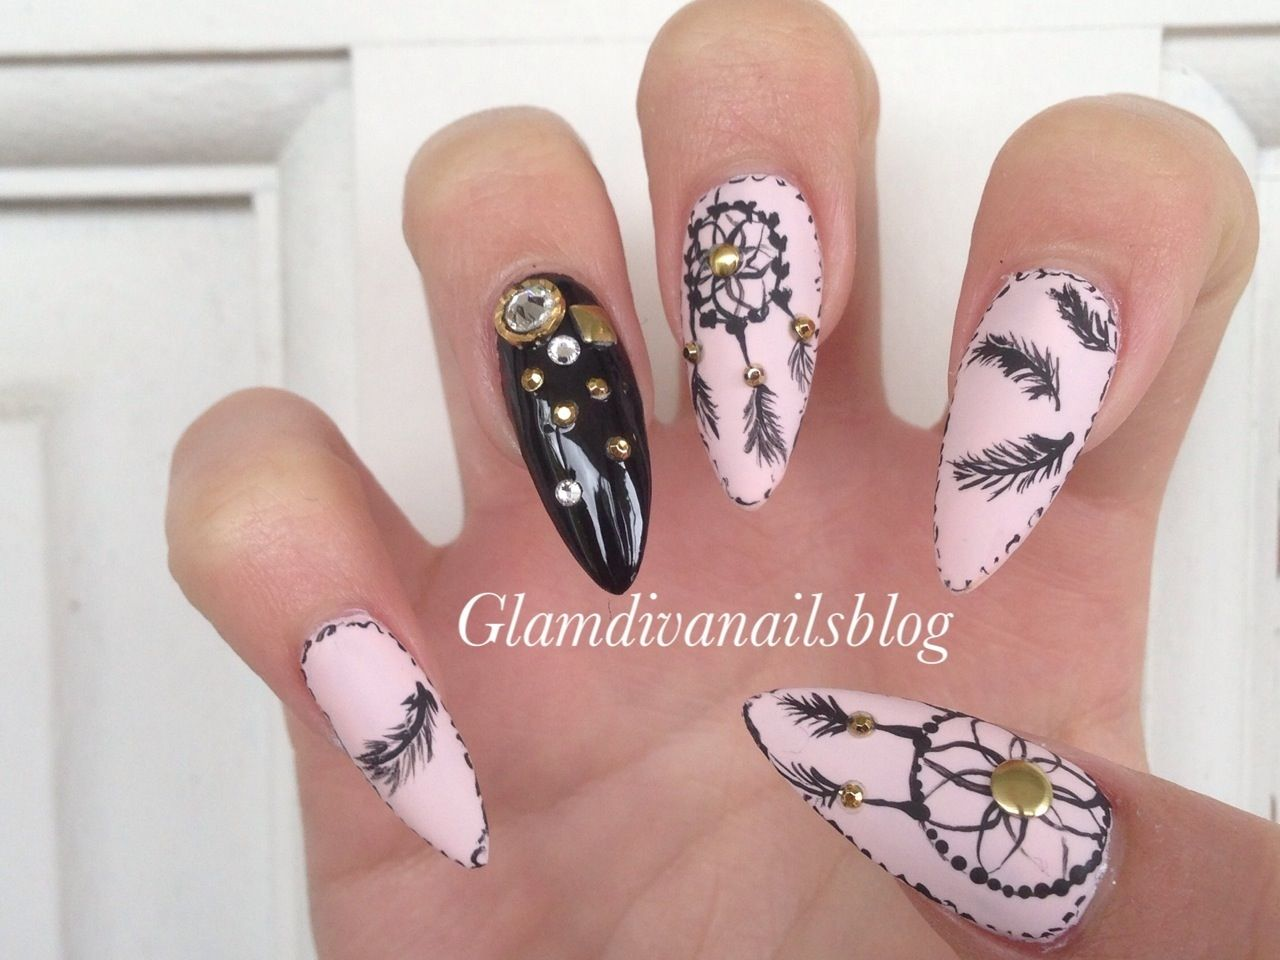 acrylic nails dream catcher - Google Search | Nail ideas | Pinterest ...